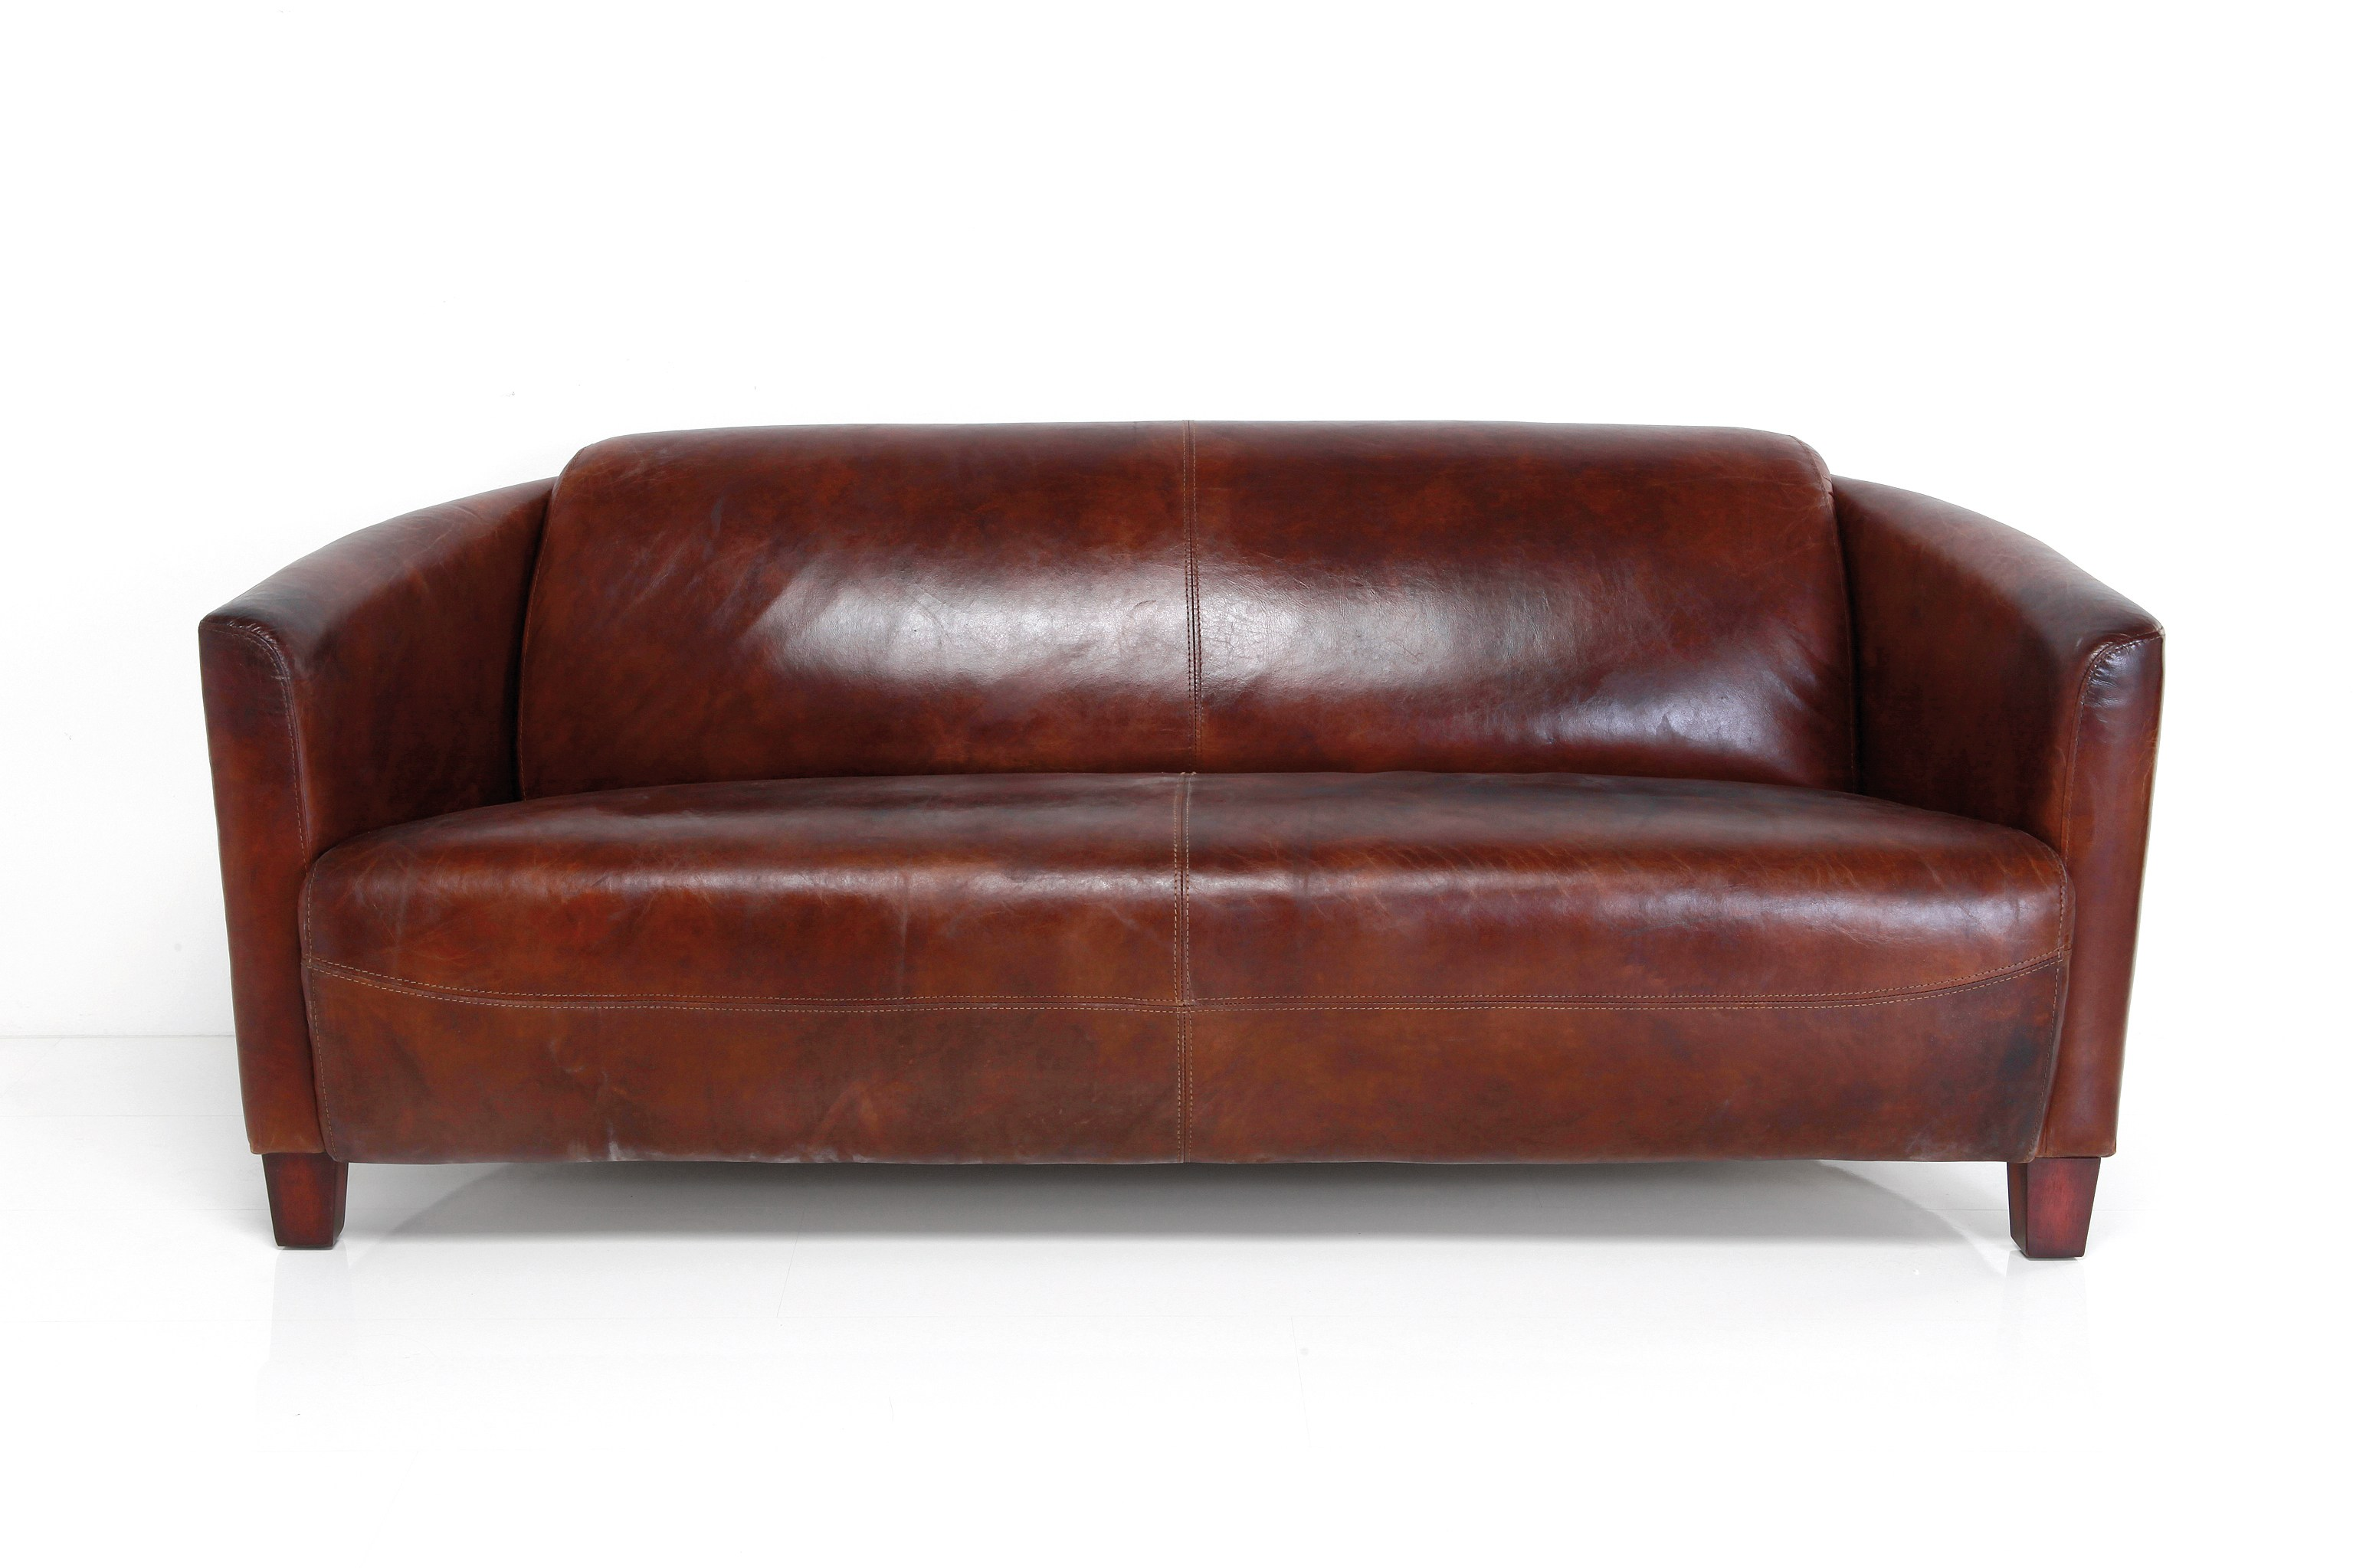 Leather sofa quotes for Sofa quotes